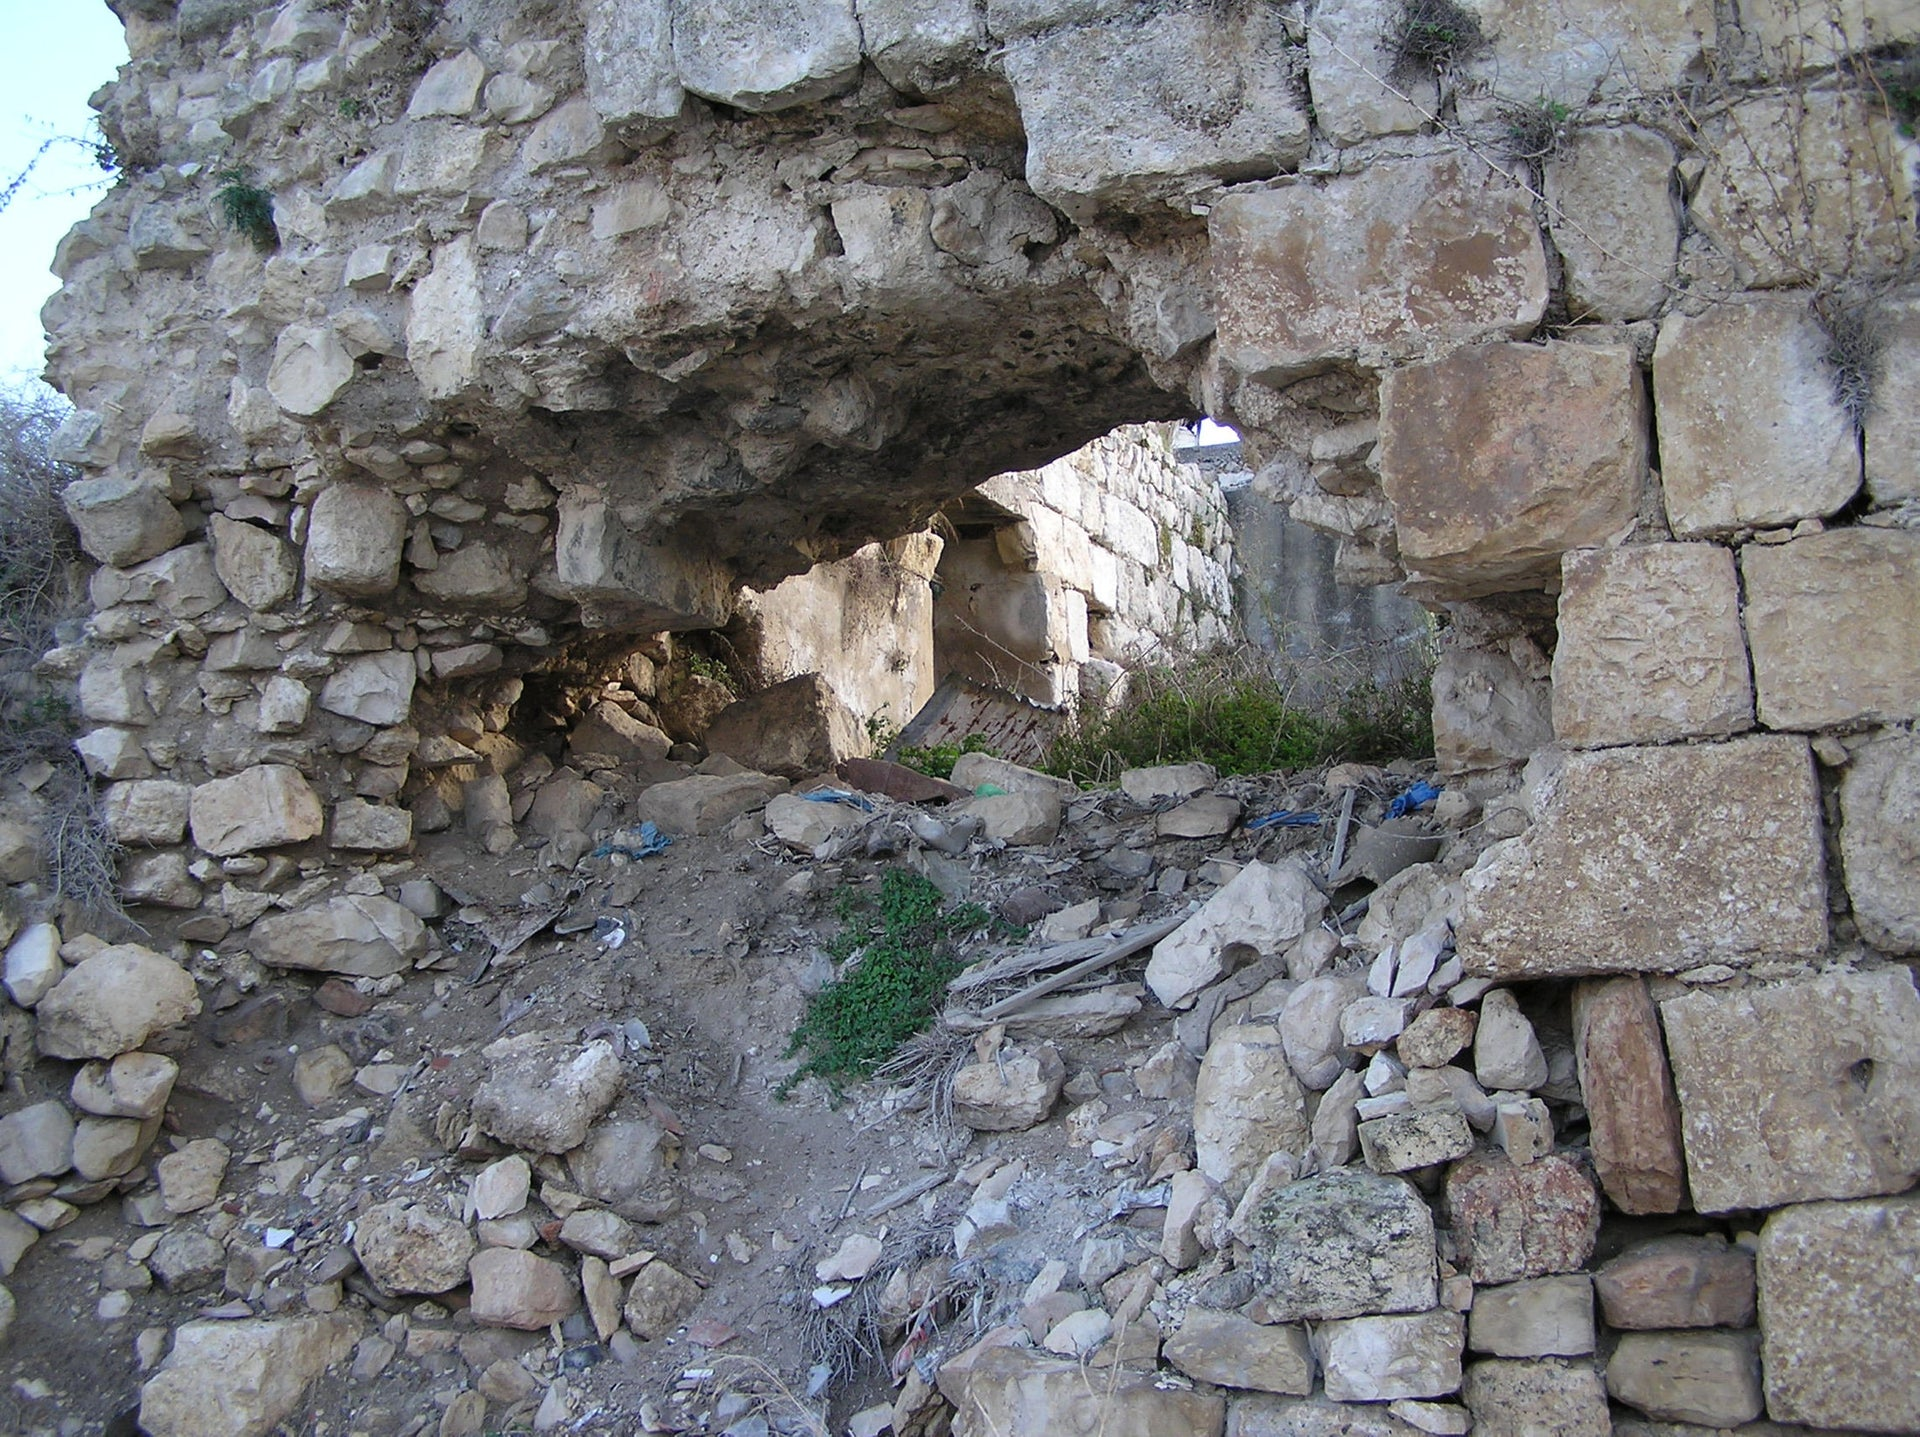 How the damage to the Crusader castle wall looked from outside. There was real danger to the villagers.